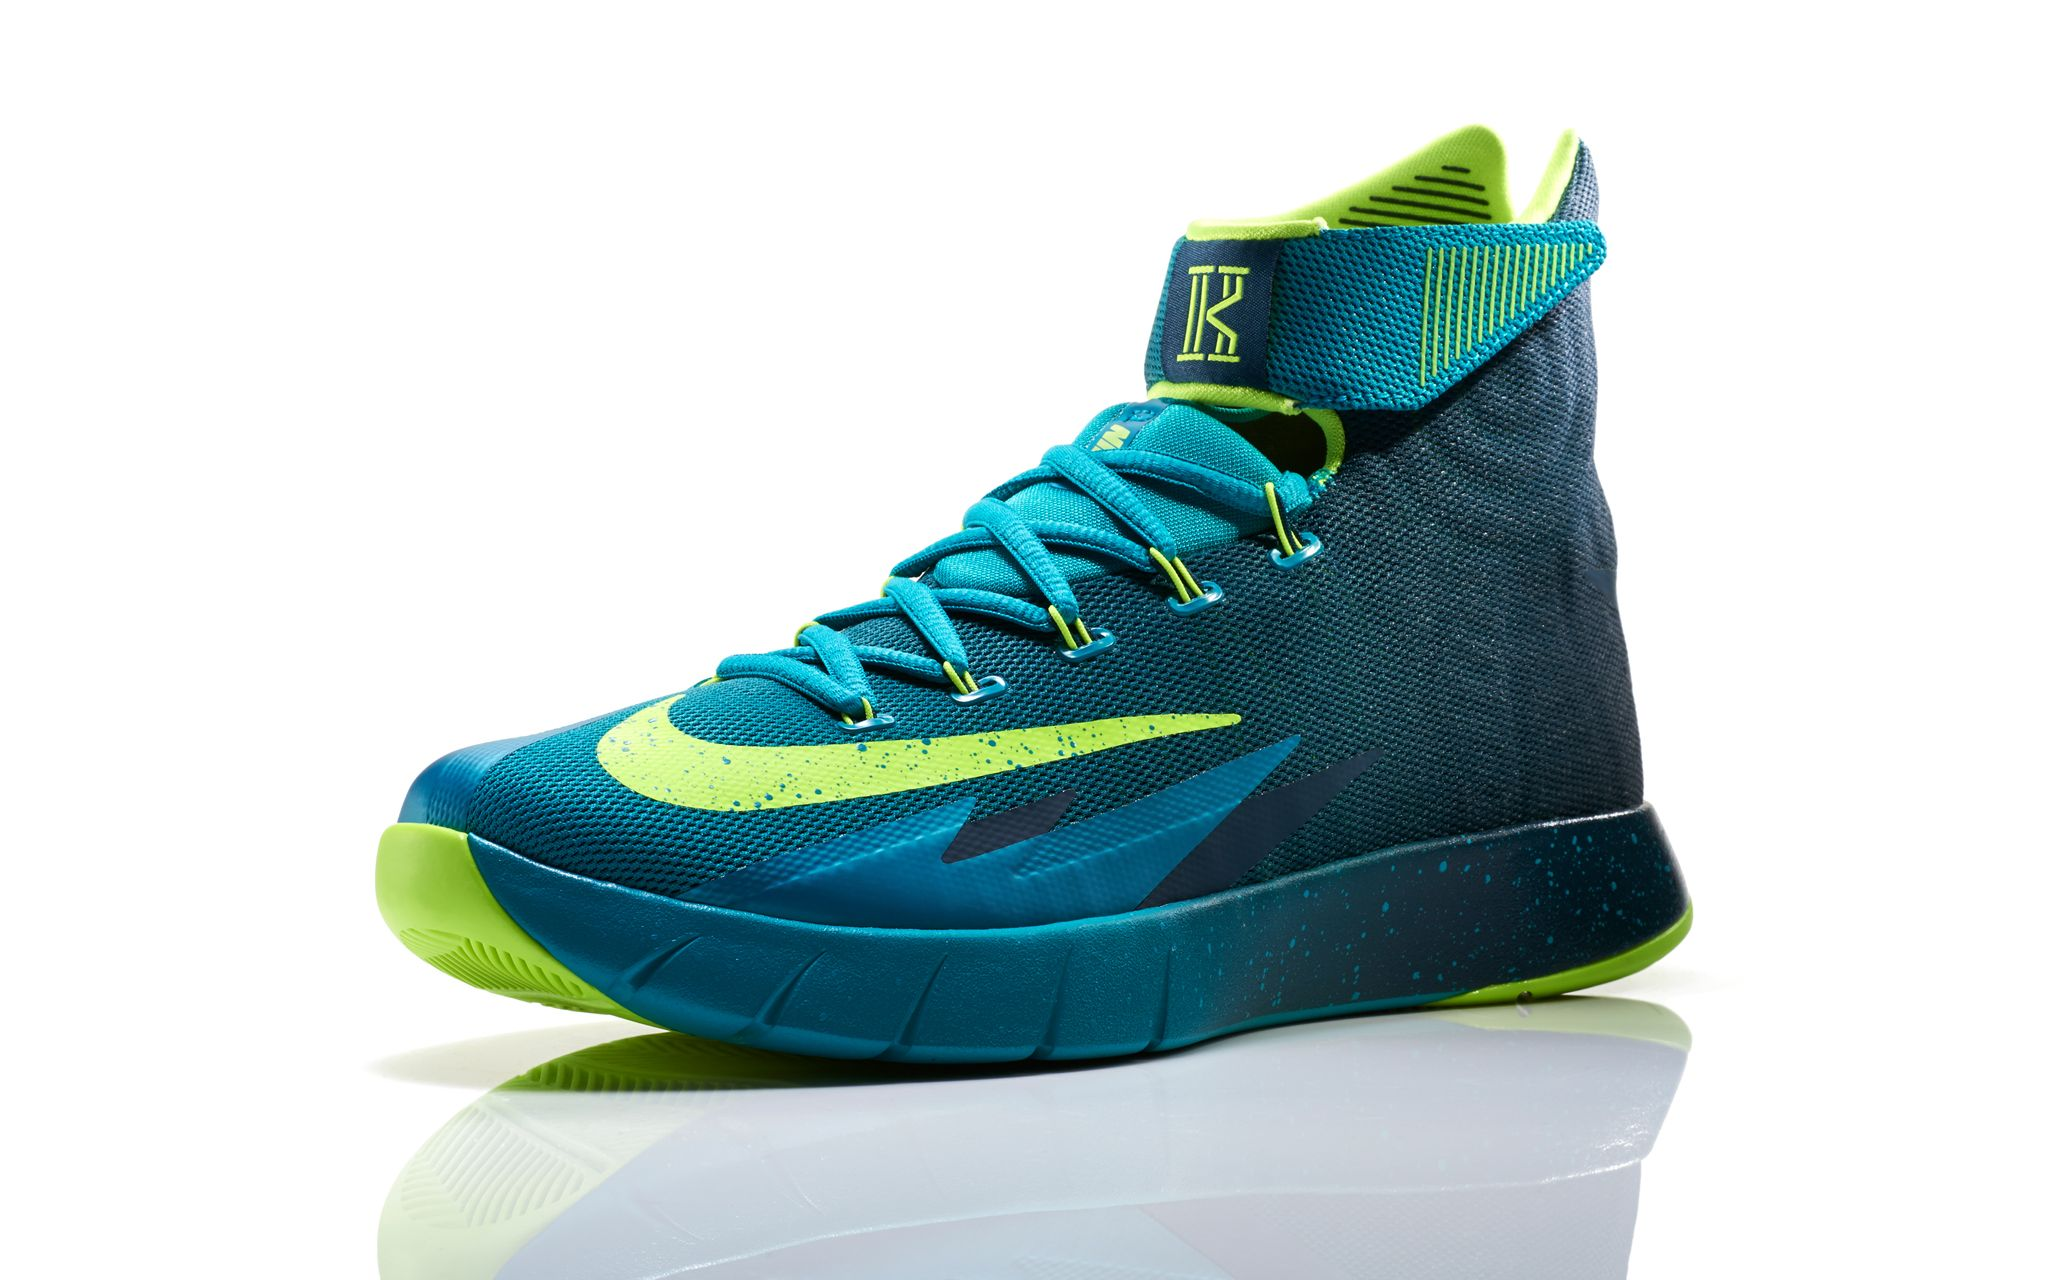 00a7481920ab Nike Zoom HyperRev Kyrie Irving